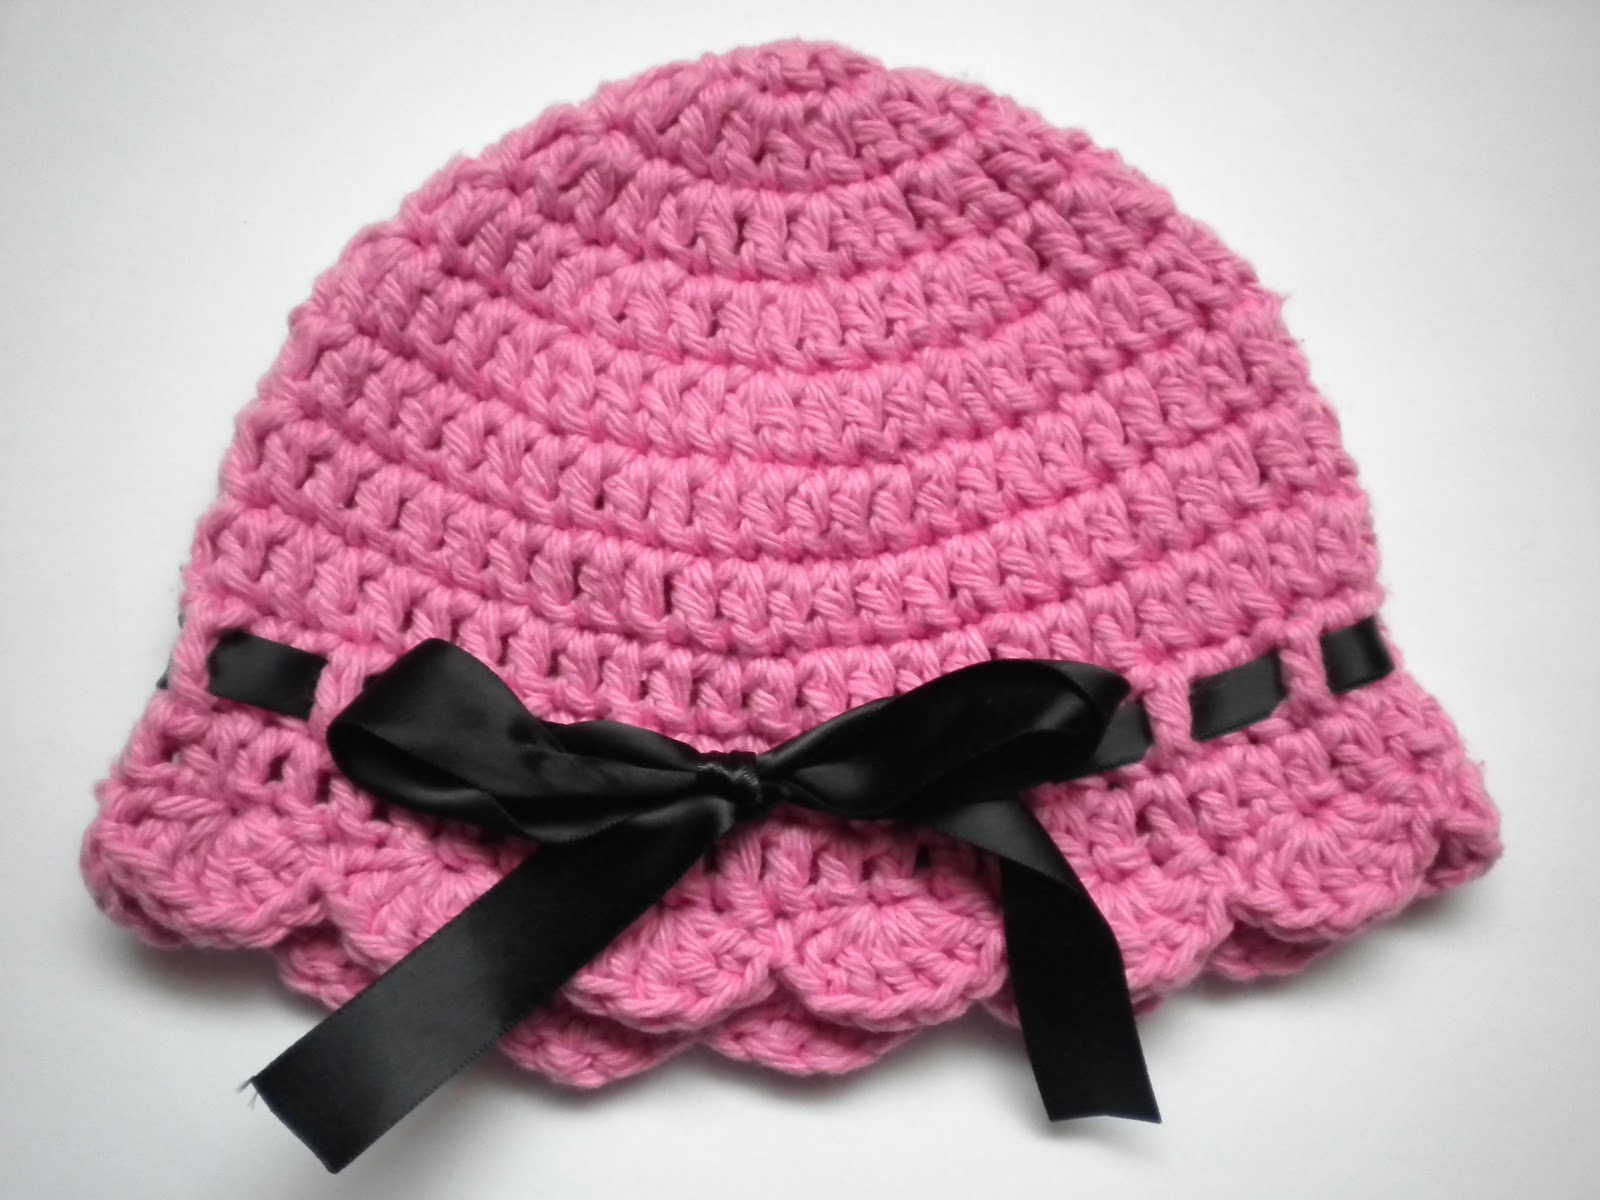 Free Crochet Patterns For Baby And Toddler Hats : AnnaVirginia Fashion: Baby Flapper-Girl Hat *Pattern*